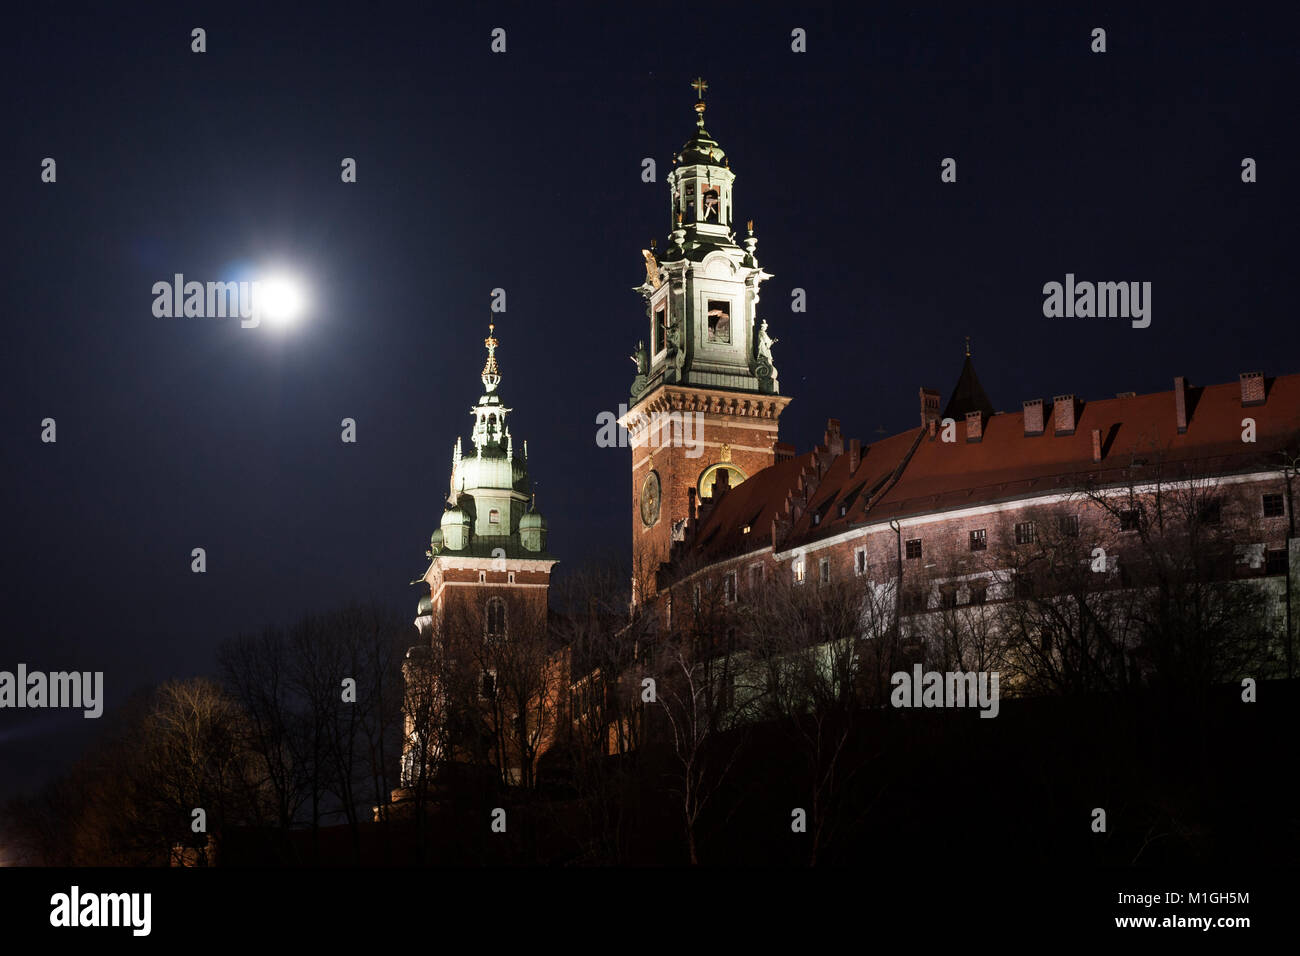 Towers of the Wawel Castle Cathedral Church in Krakow, Poland at night with full moon above - Stock Image